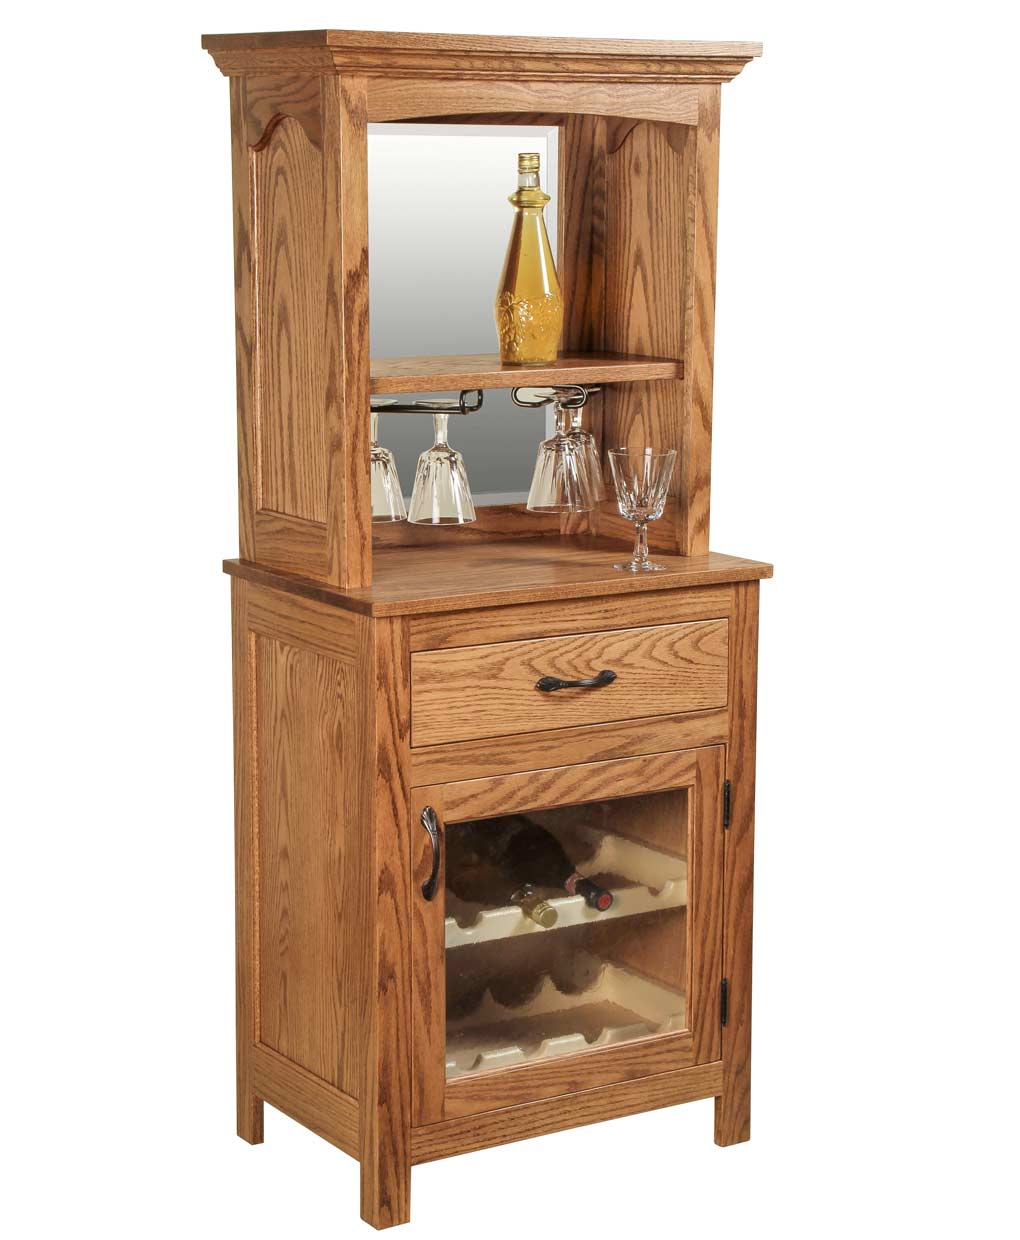 Solid oak wine rack amish direct furniture